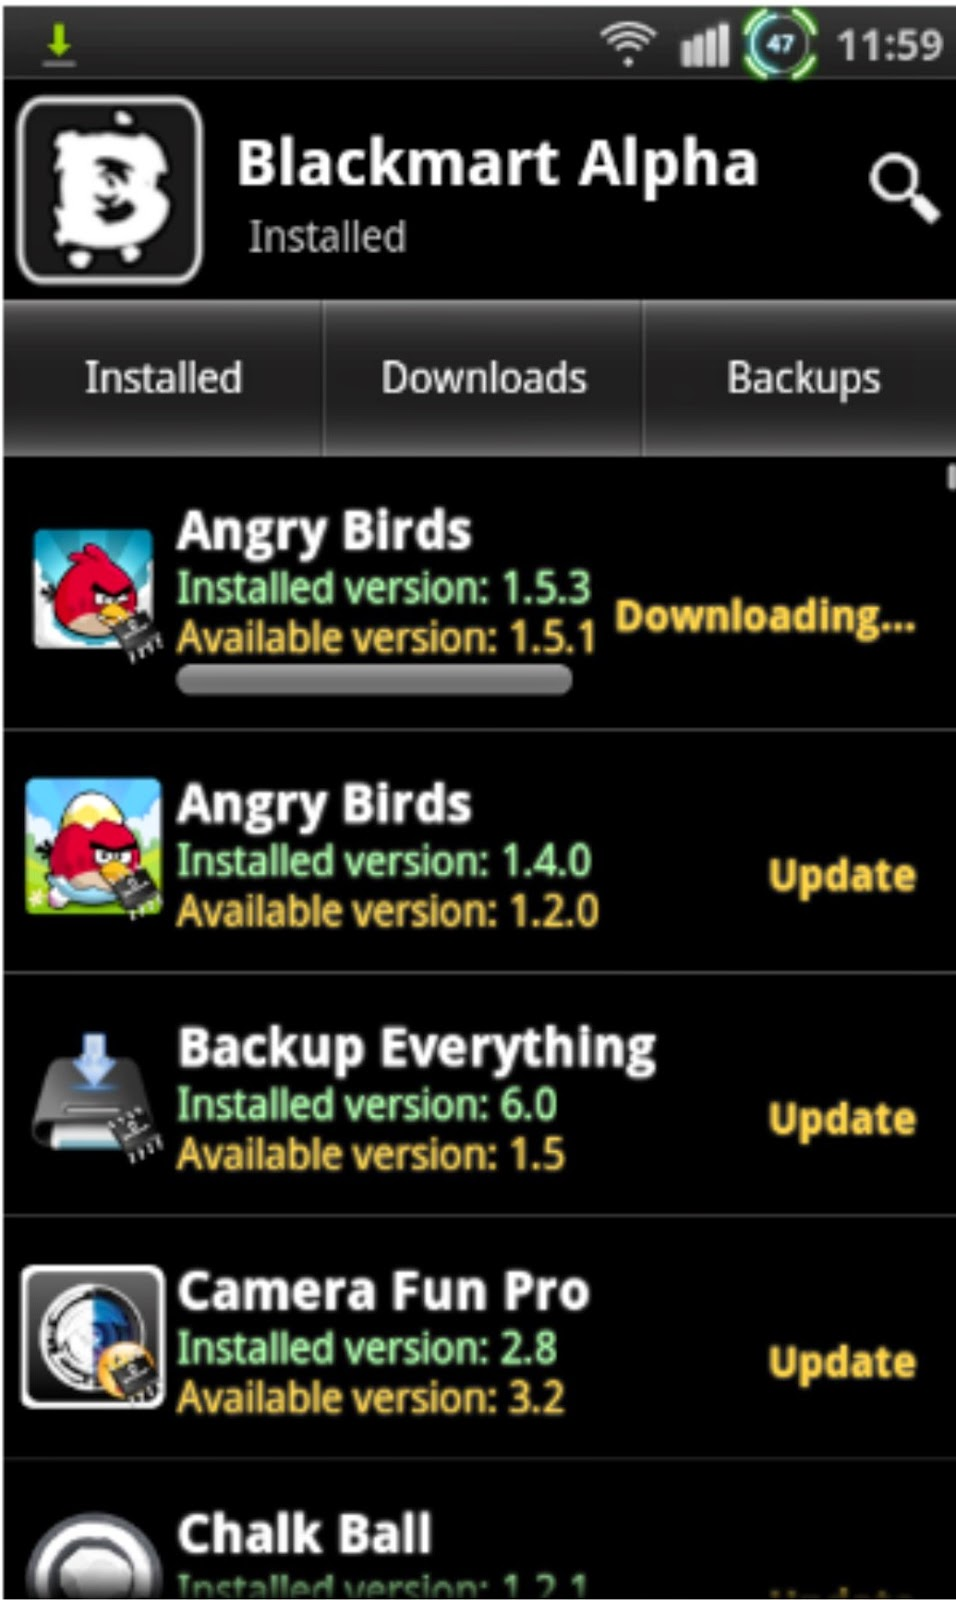 blackmart alpha apk free download for galaxy note 2